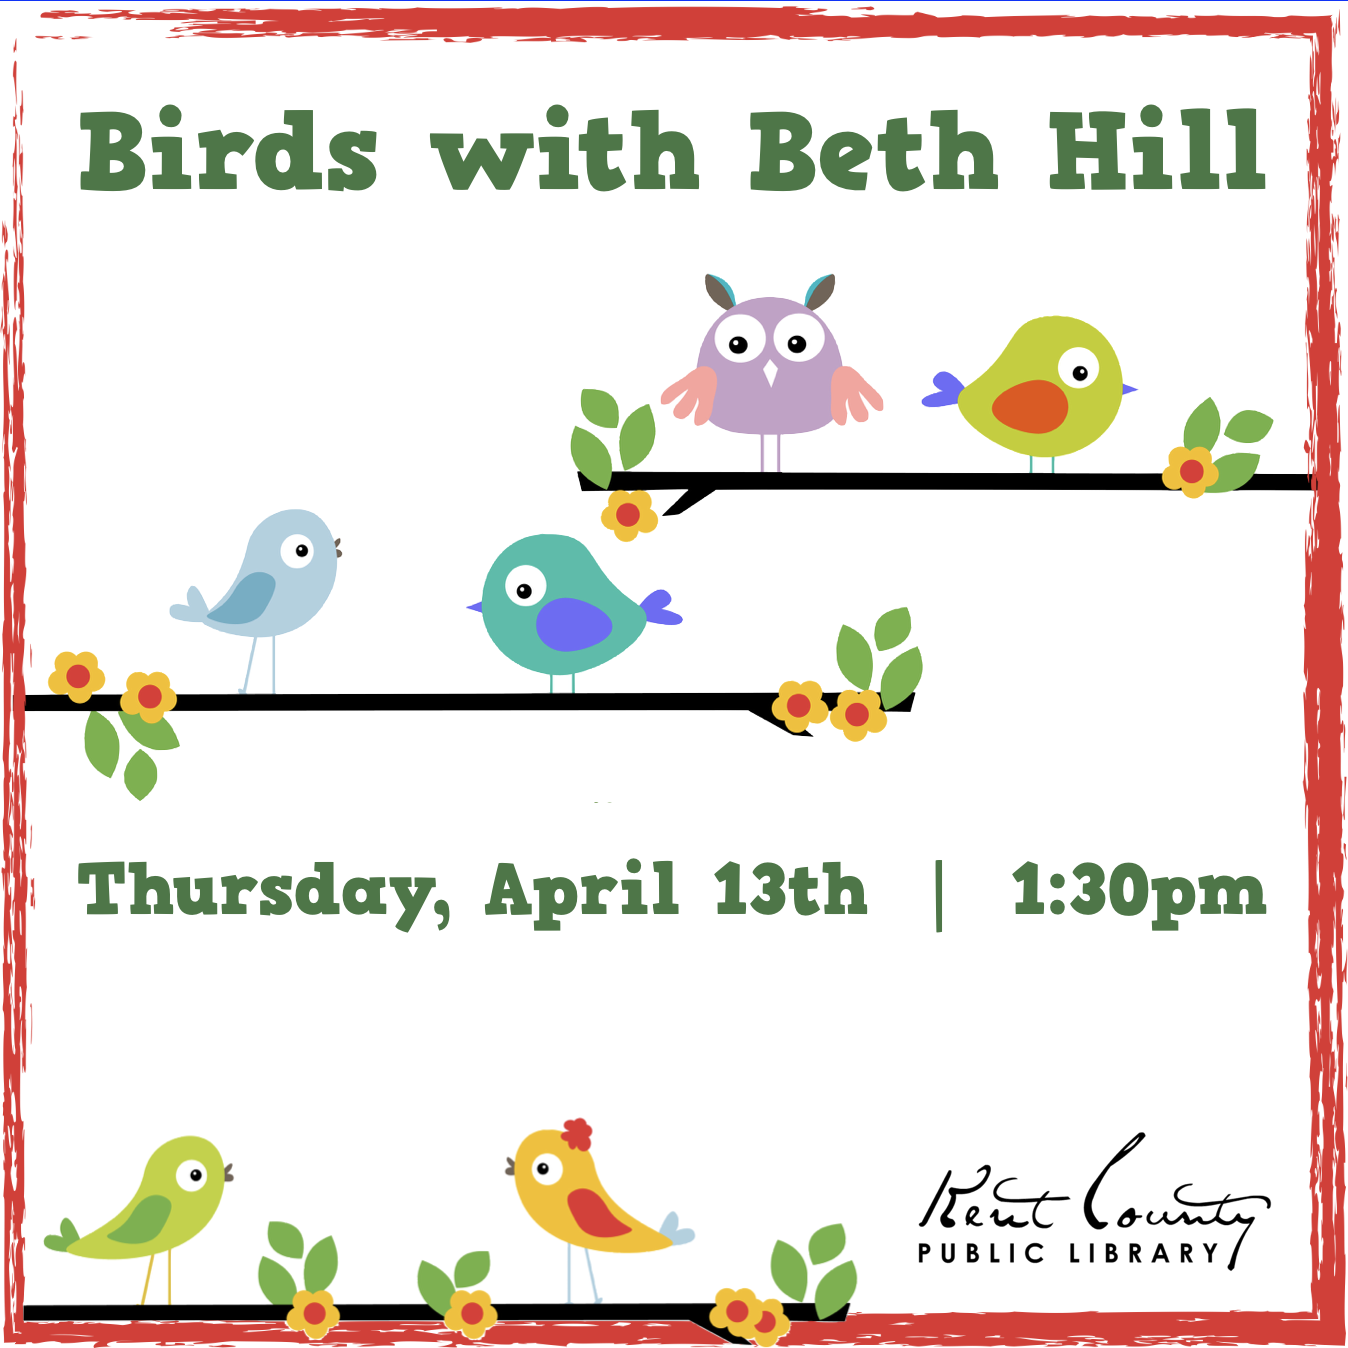 Birds with Beth Hill